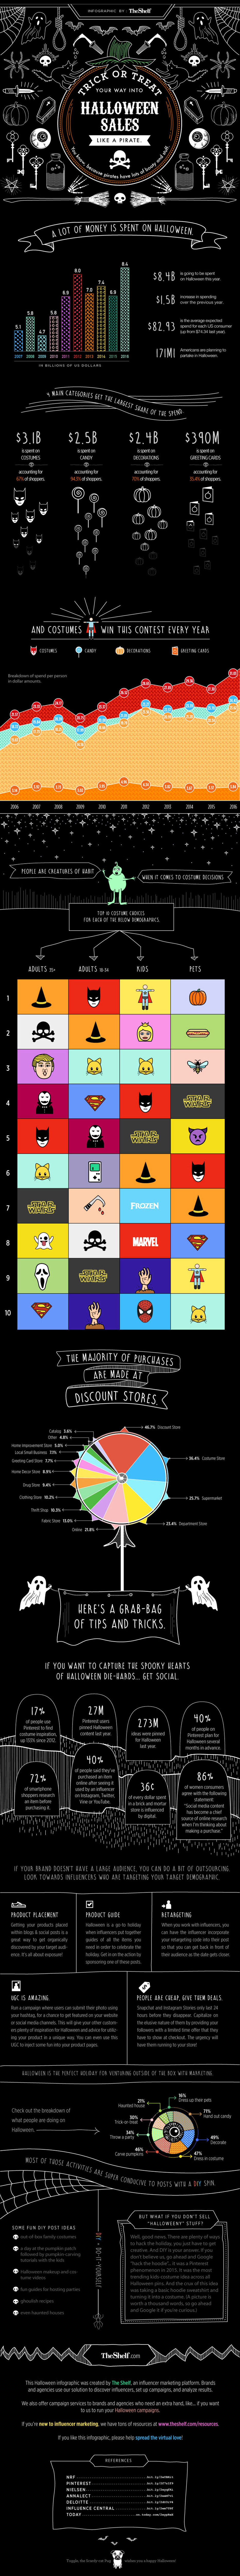 How Much Americans Spend on Halloween Infographic